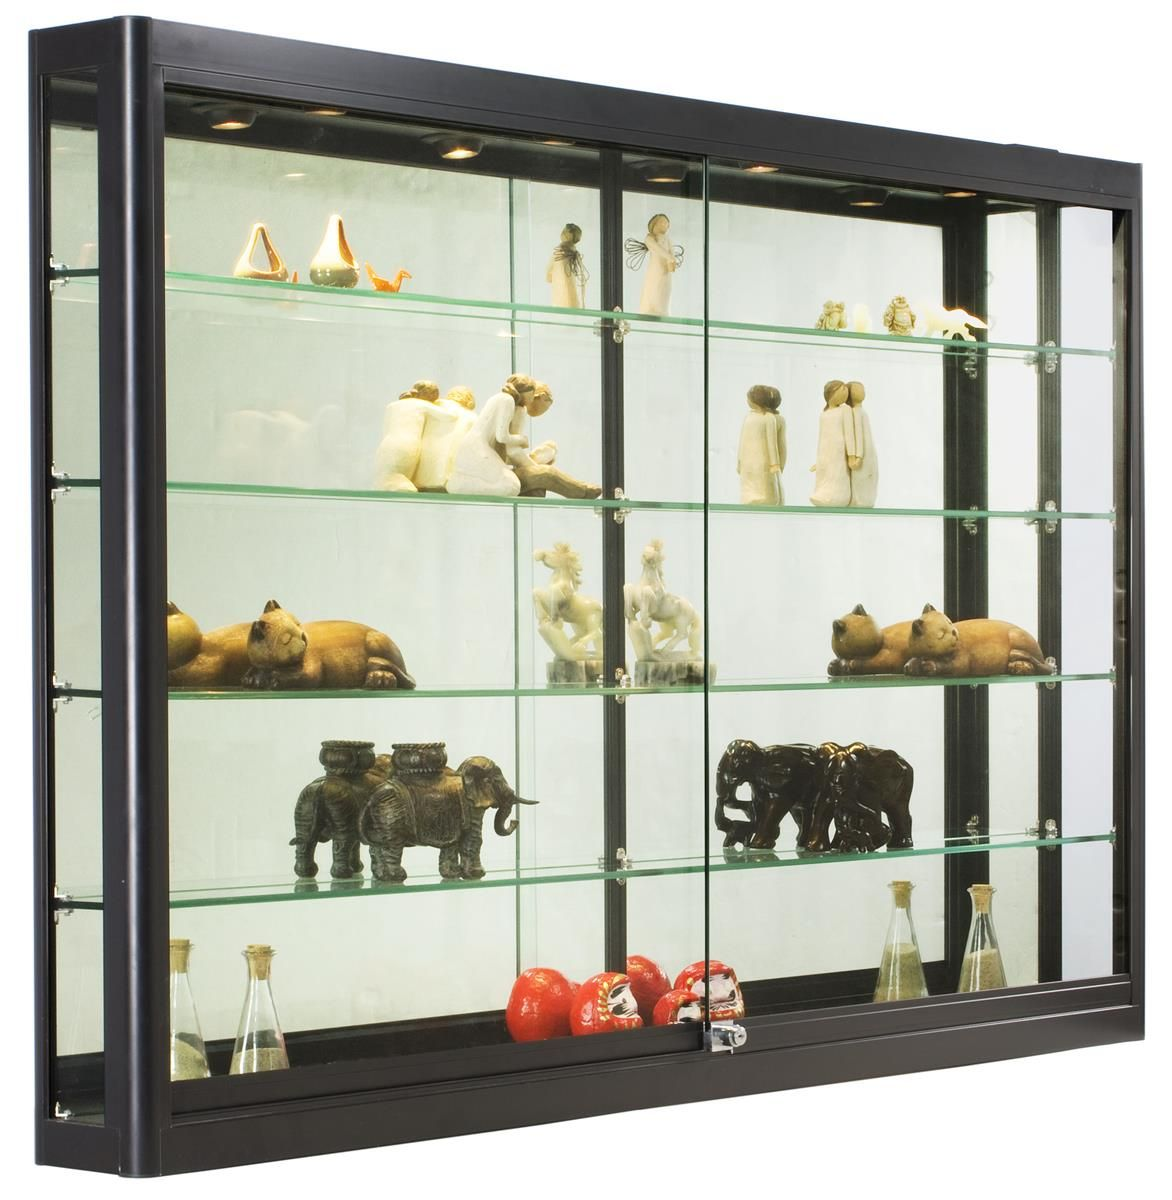 5ft. Wall Mounted Display Case w/4 Top Halogen Lights u0026 Mirror Back, Locking - Black : Wall ...